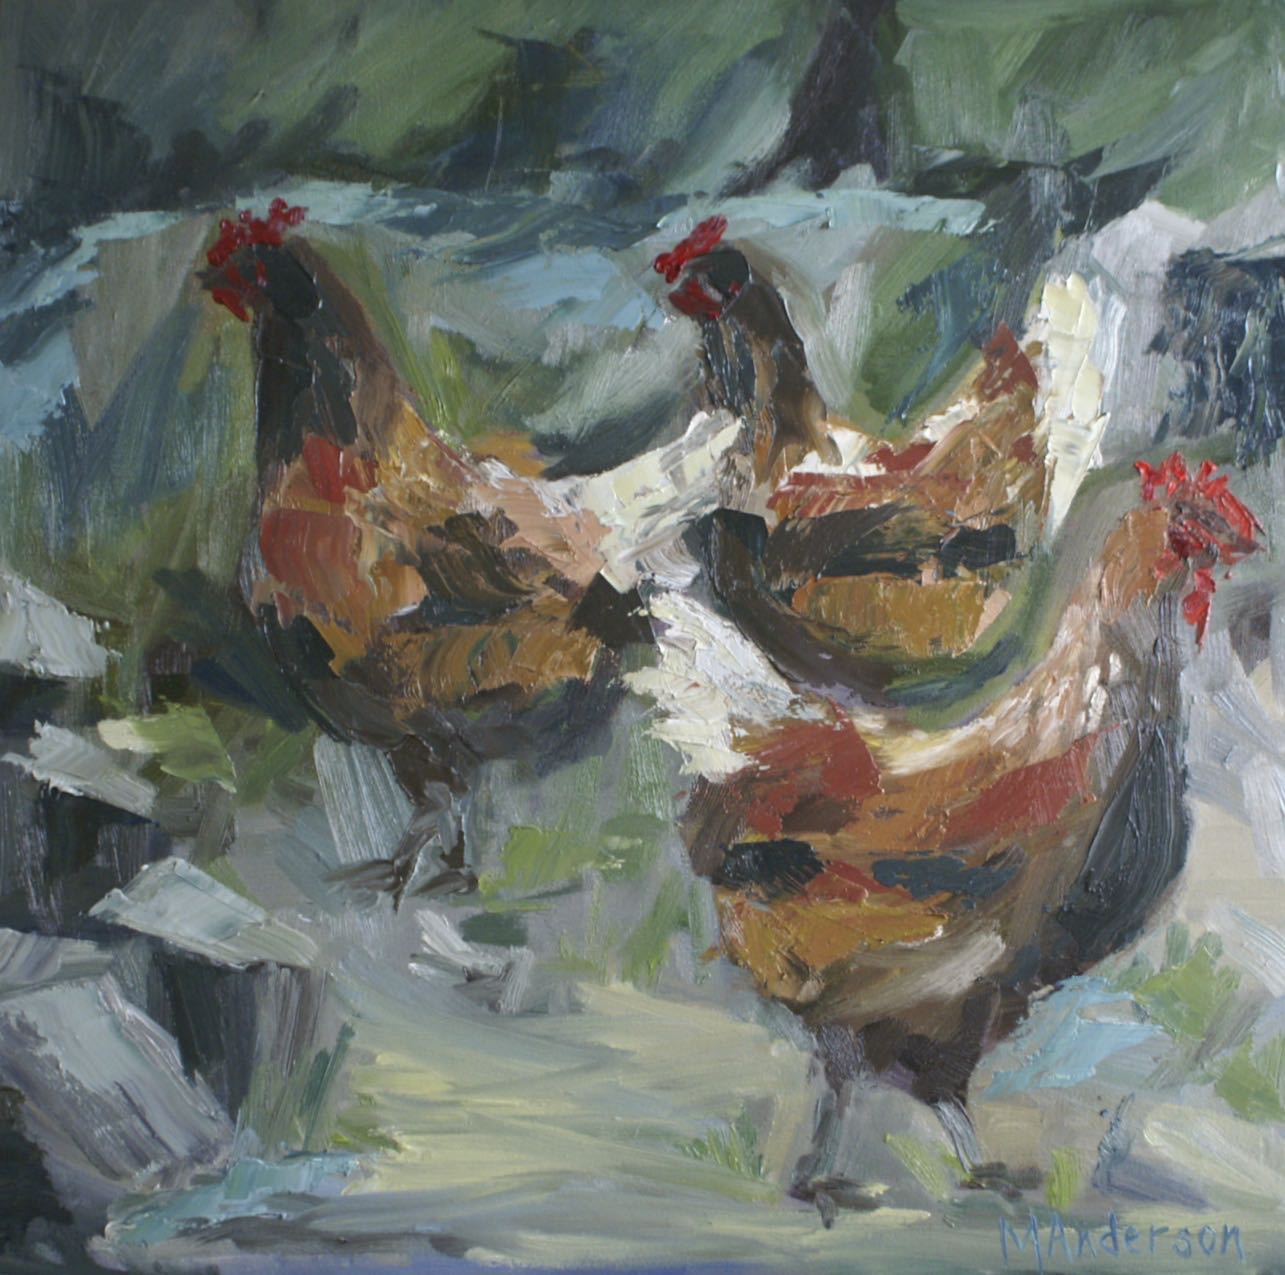 Chickens - Sold